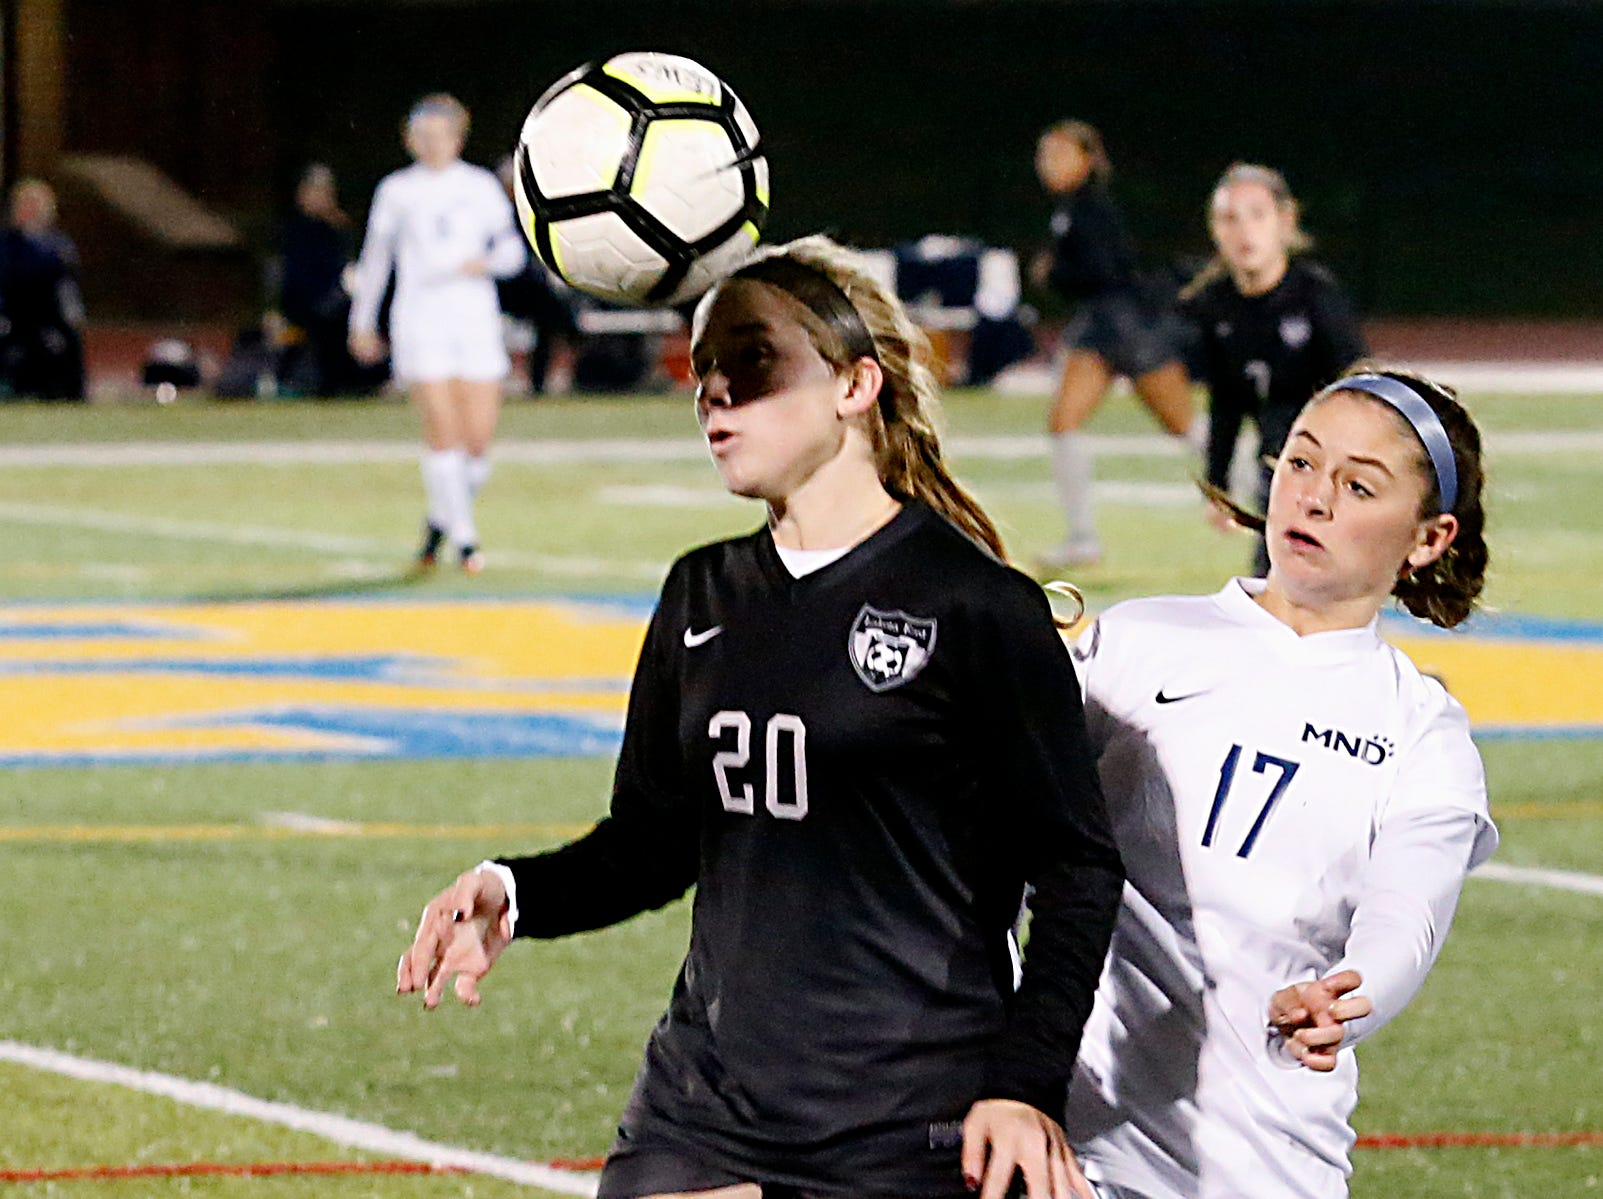 Lakota East forward heads the ball away from Mount Notre Dame defender Eden Marques during their Division I Southwest district final soccer game at Walnut Hills in Cincinnati Saturday, Oct. 27, 2018.